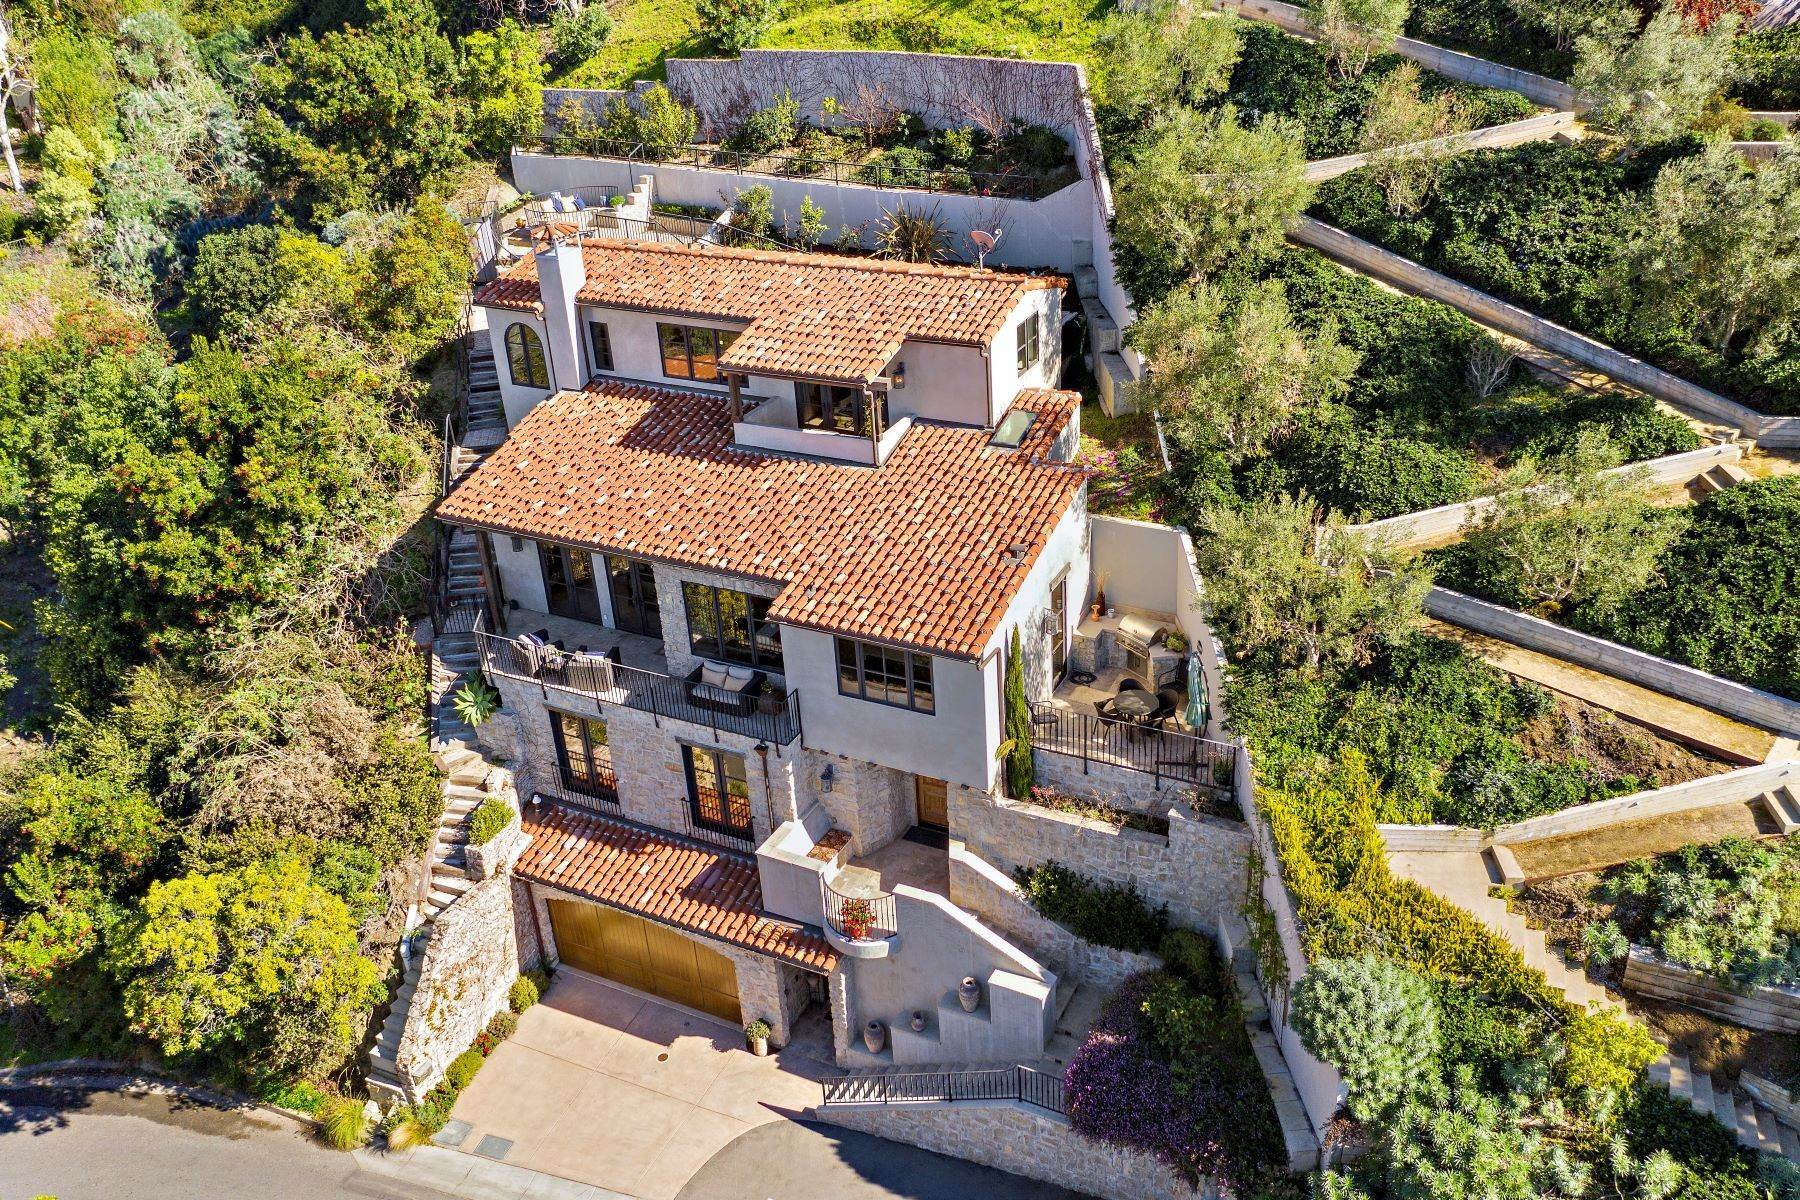 Single Family Homes for Sale at 2100 Crestview Drive, Laguna Beach, CA 92651 2100 Crestview Drive Laguna Beach, California 92651 United States